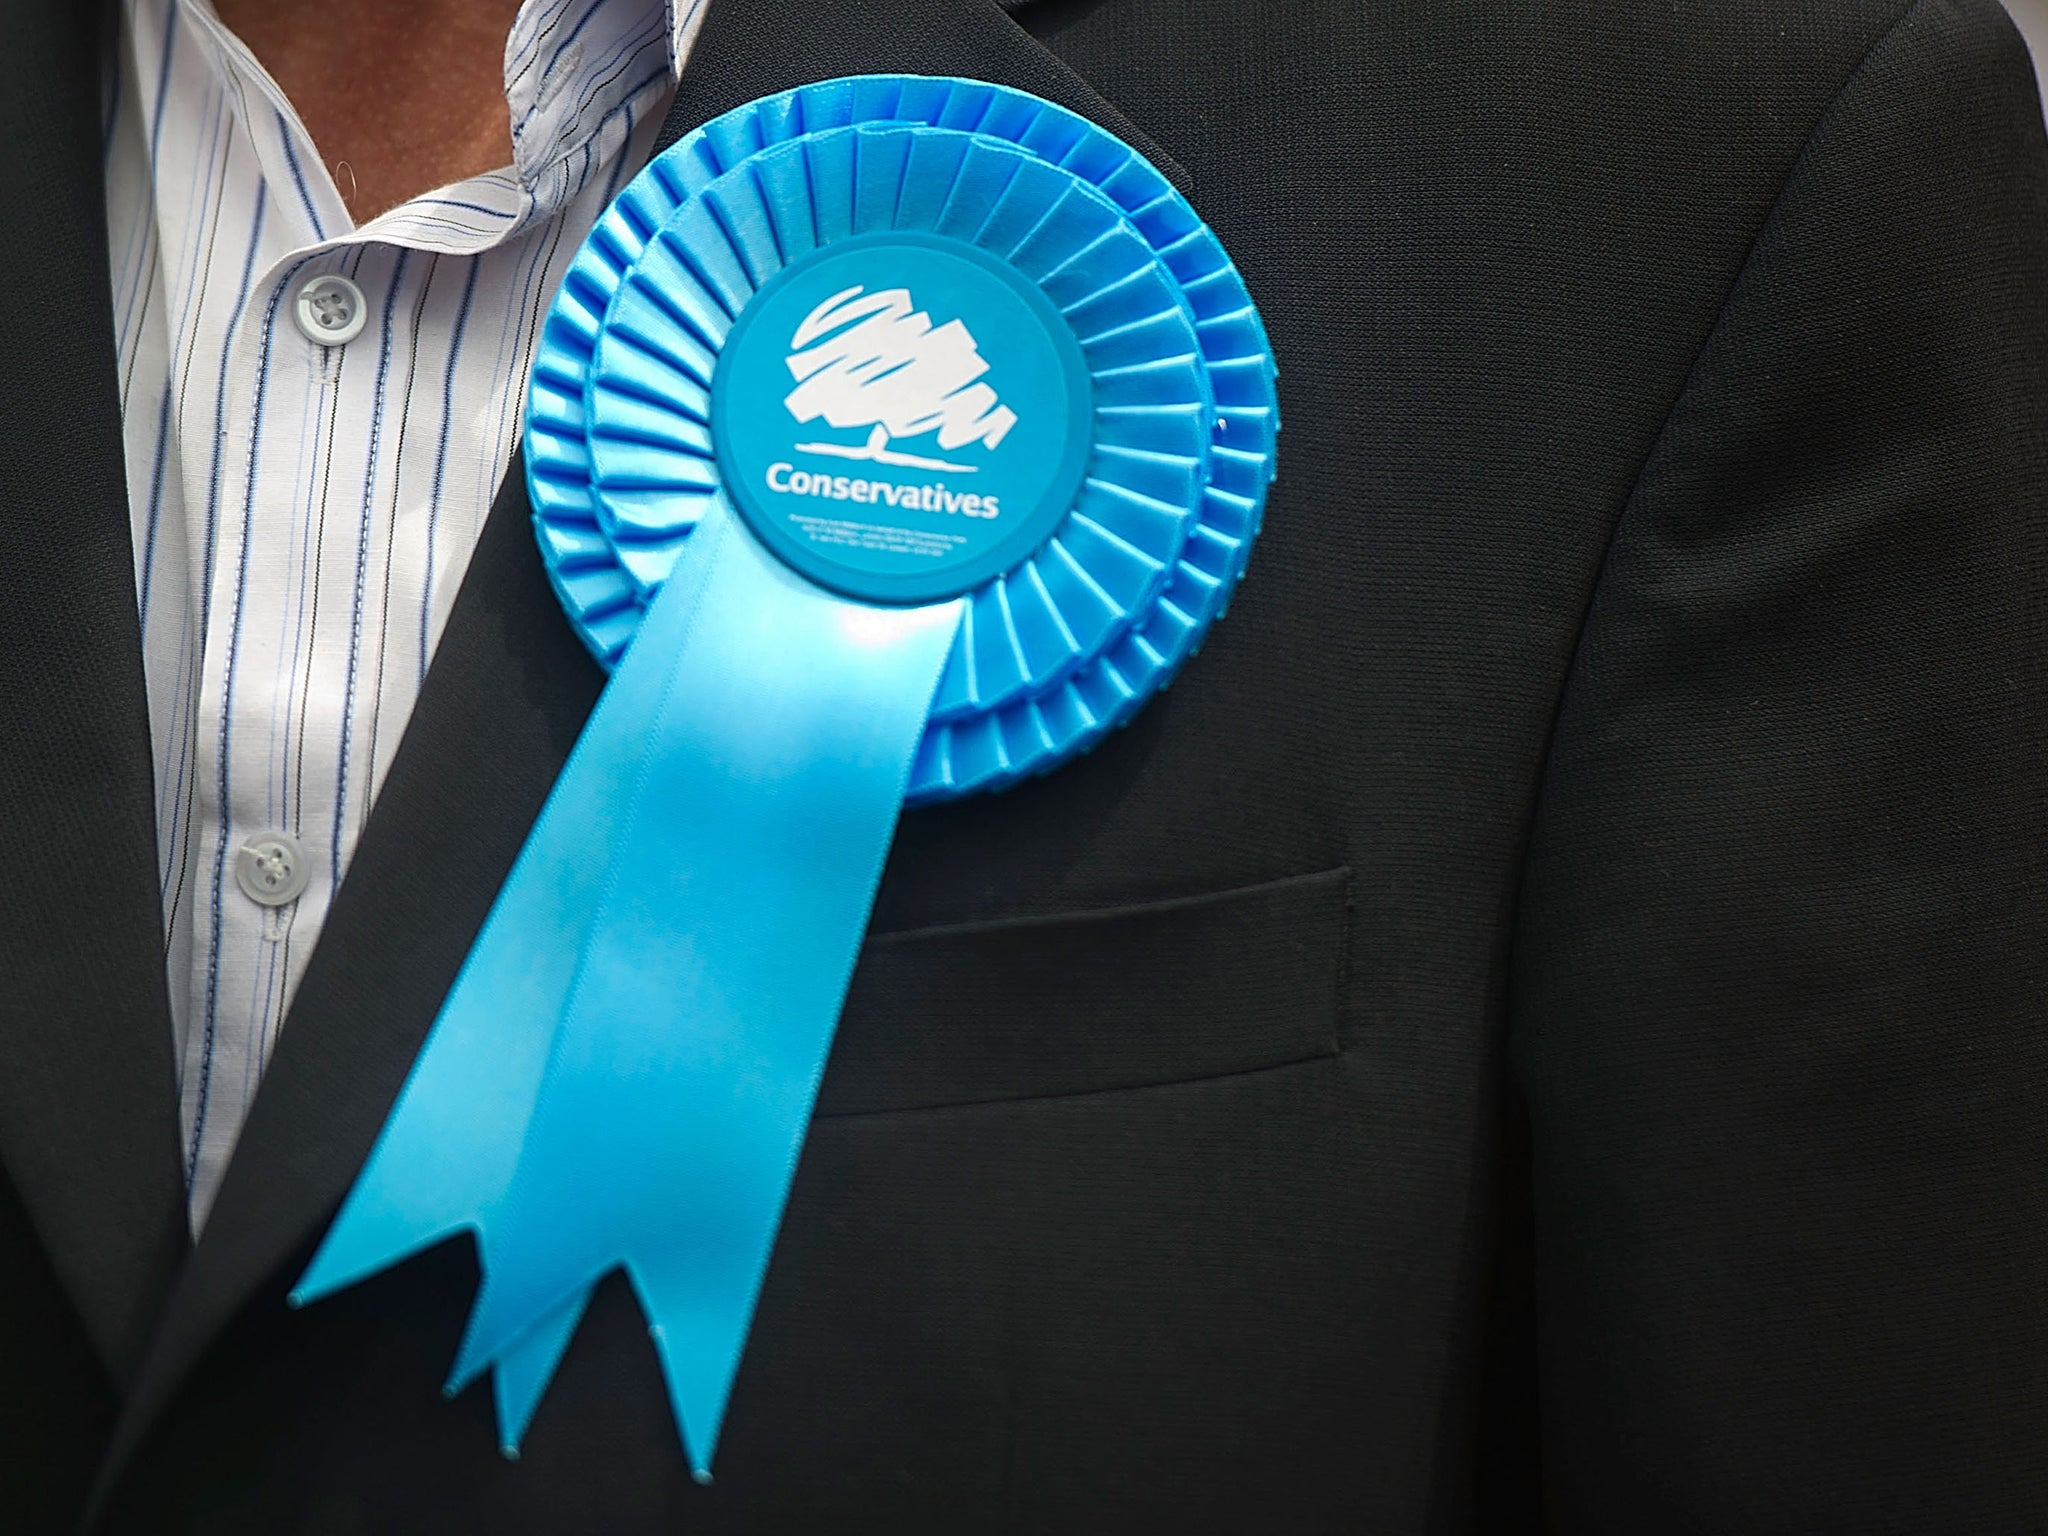 General election: Tories urged to drop parliamentary candidate for 'disgusting racism'